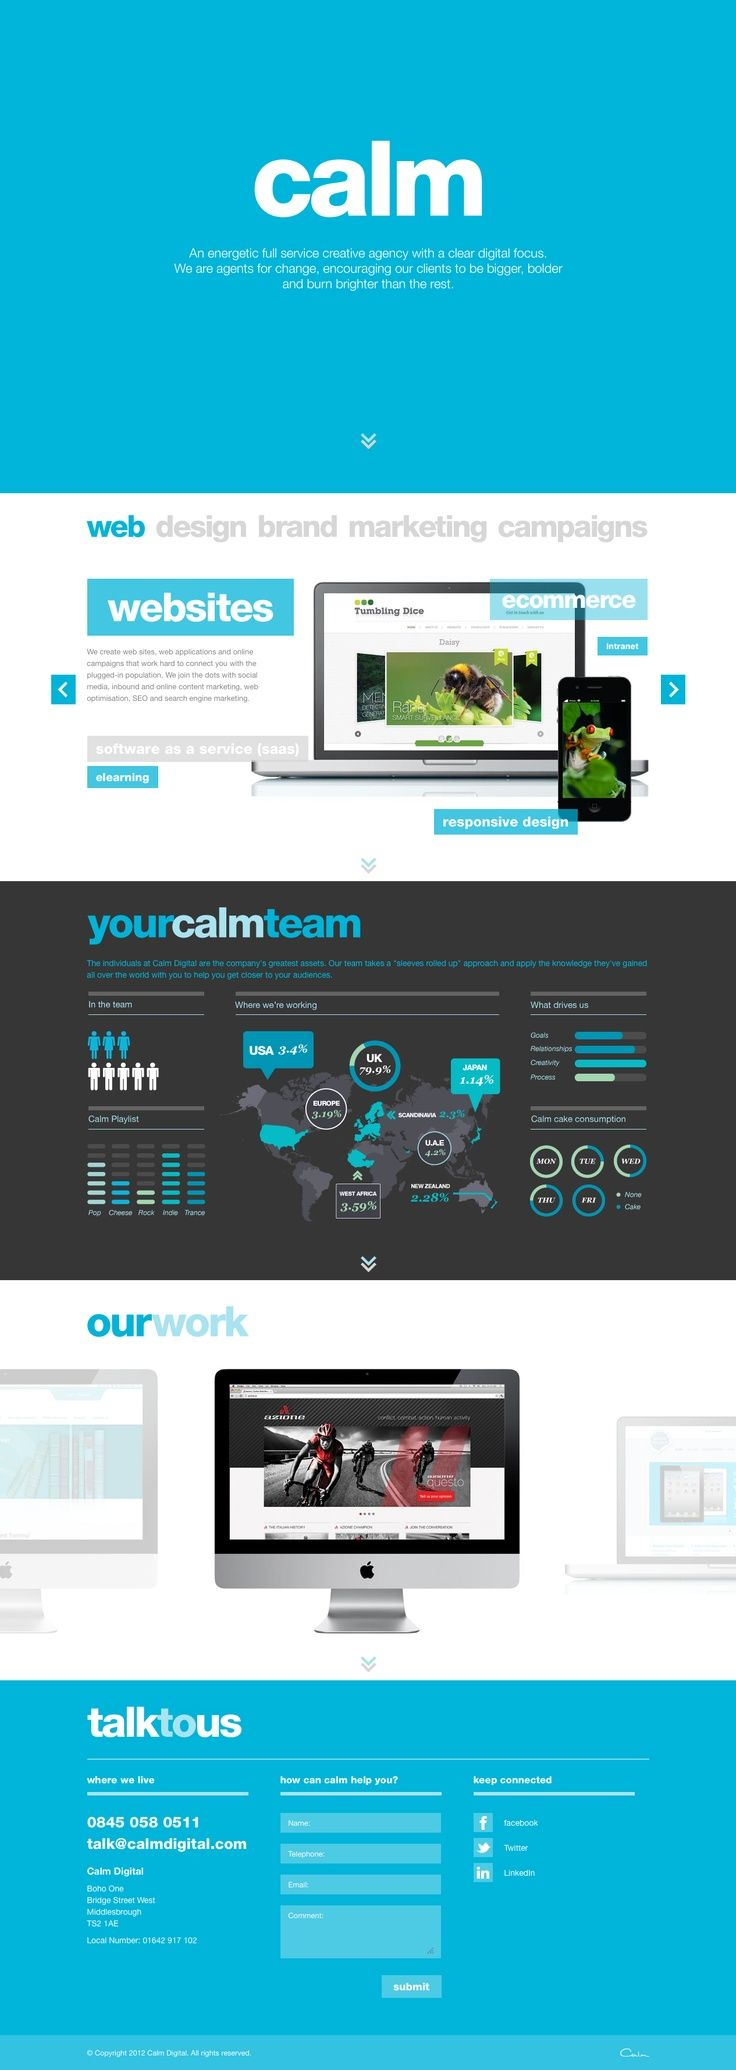 96 best FLAT UI images on Pinterest | Website designs, Design web ...